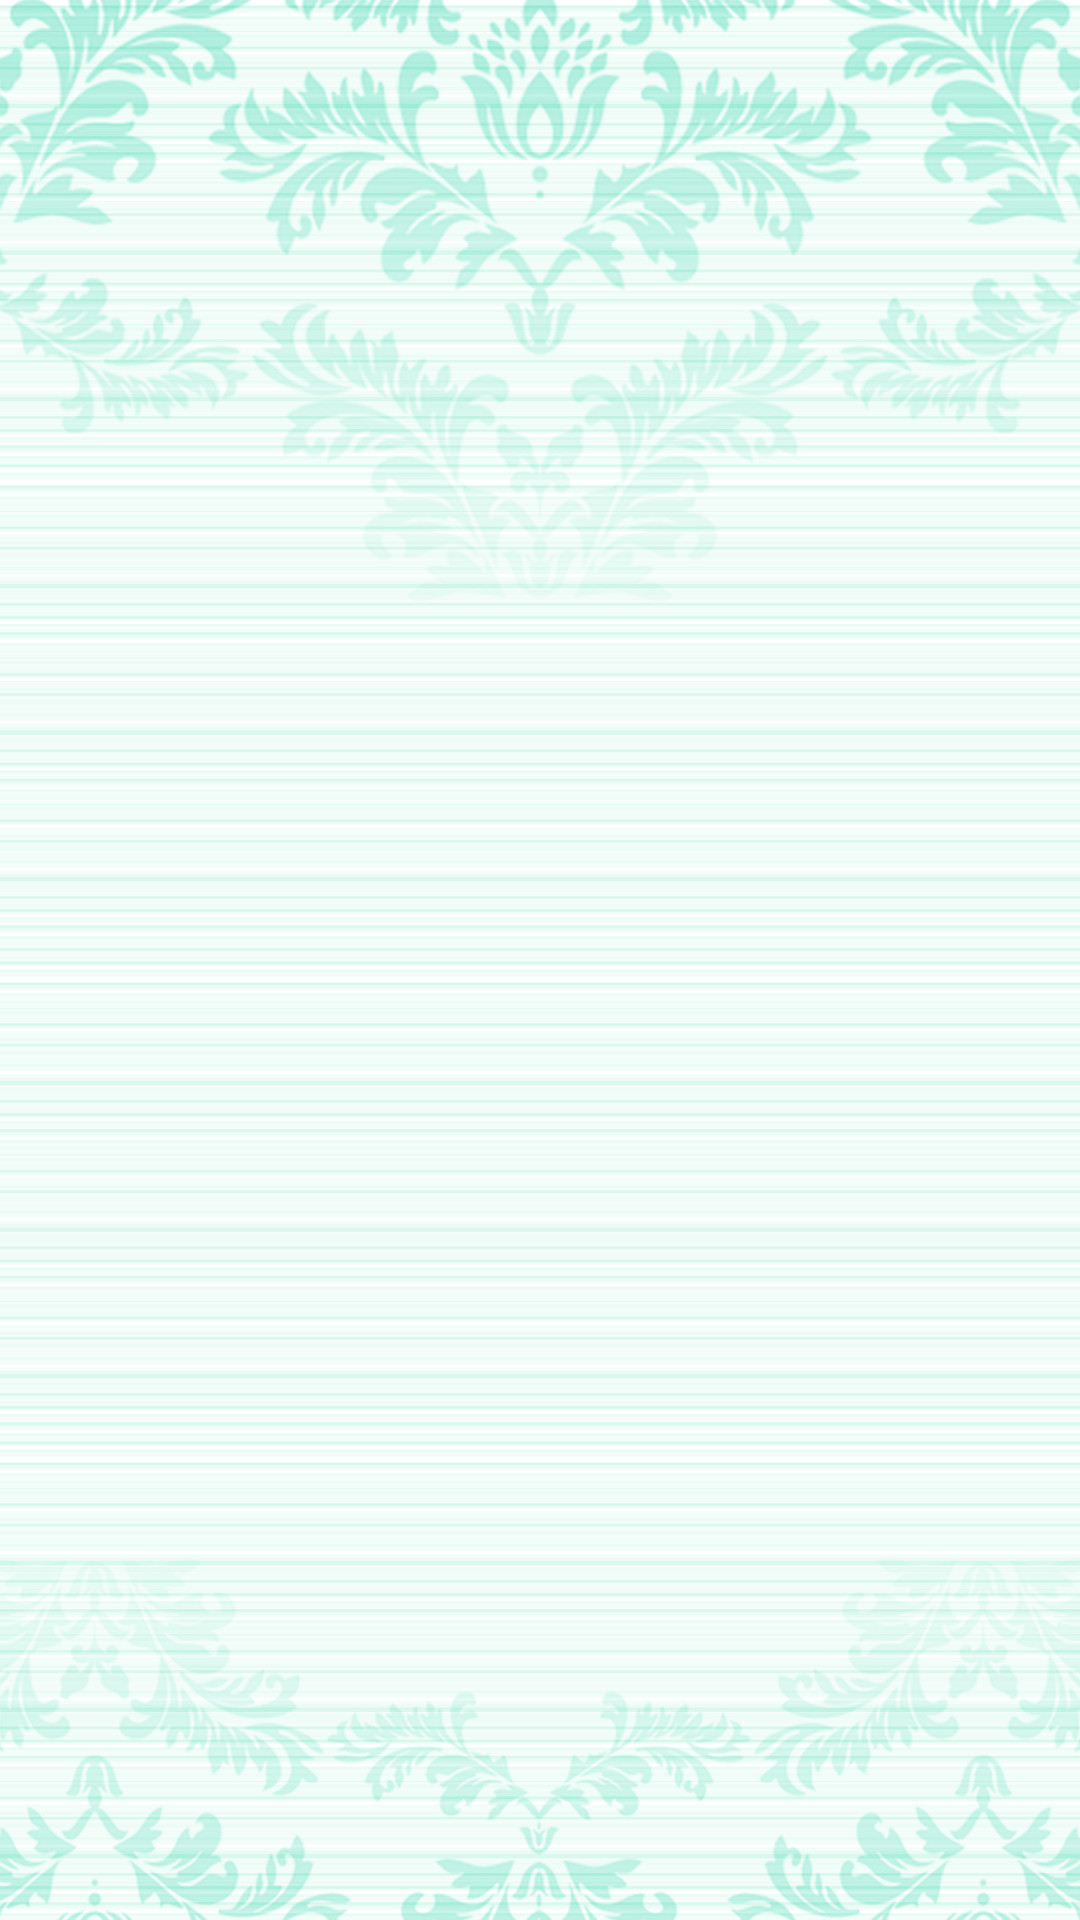 1080x1920 Pastel mint green ombre damask frame iPhone phone lock screen wallpaper background